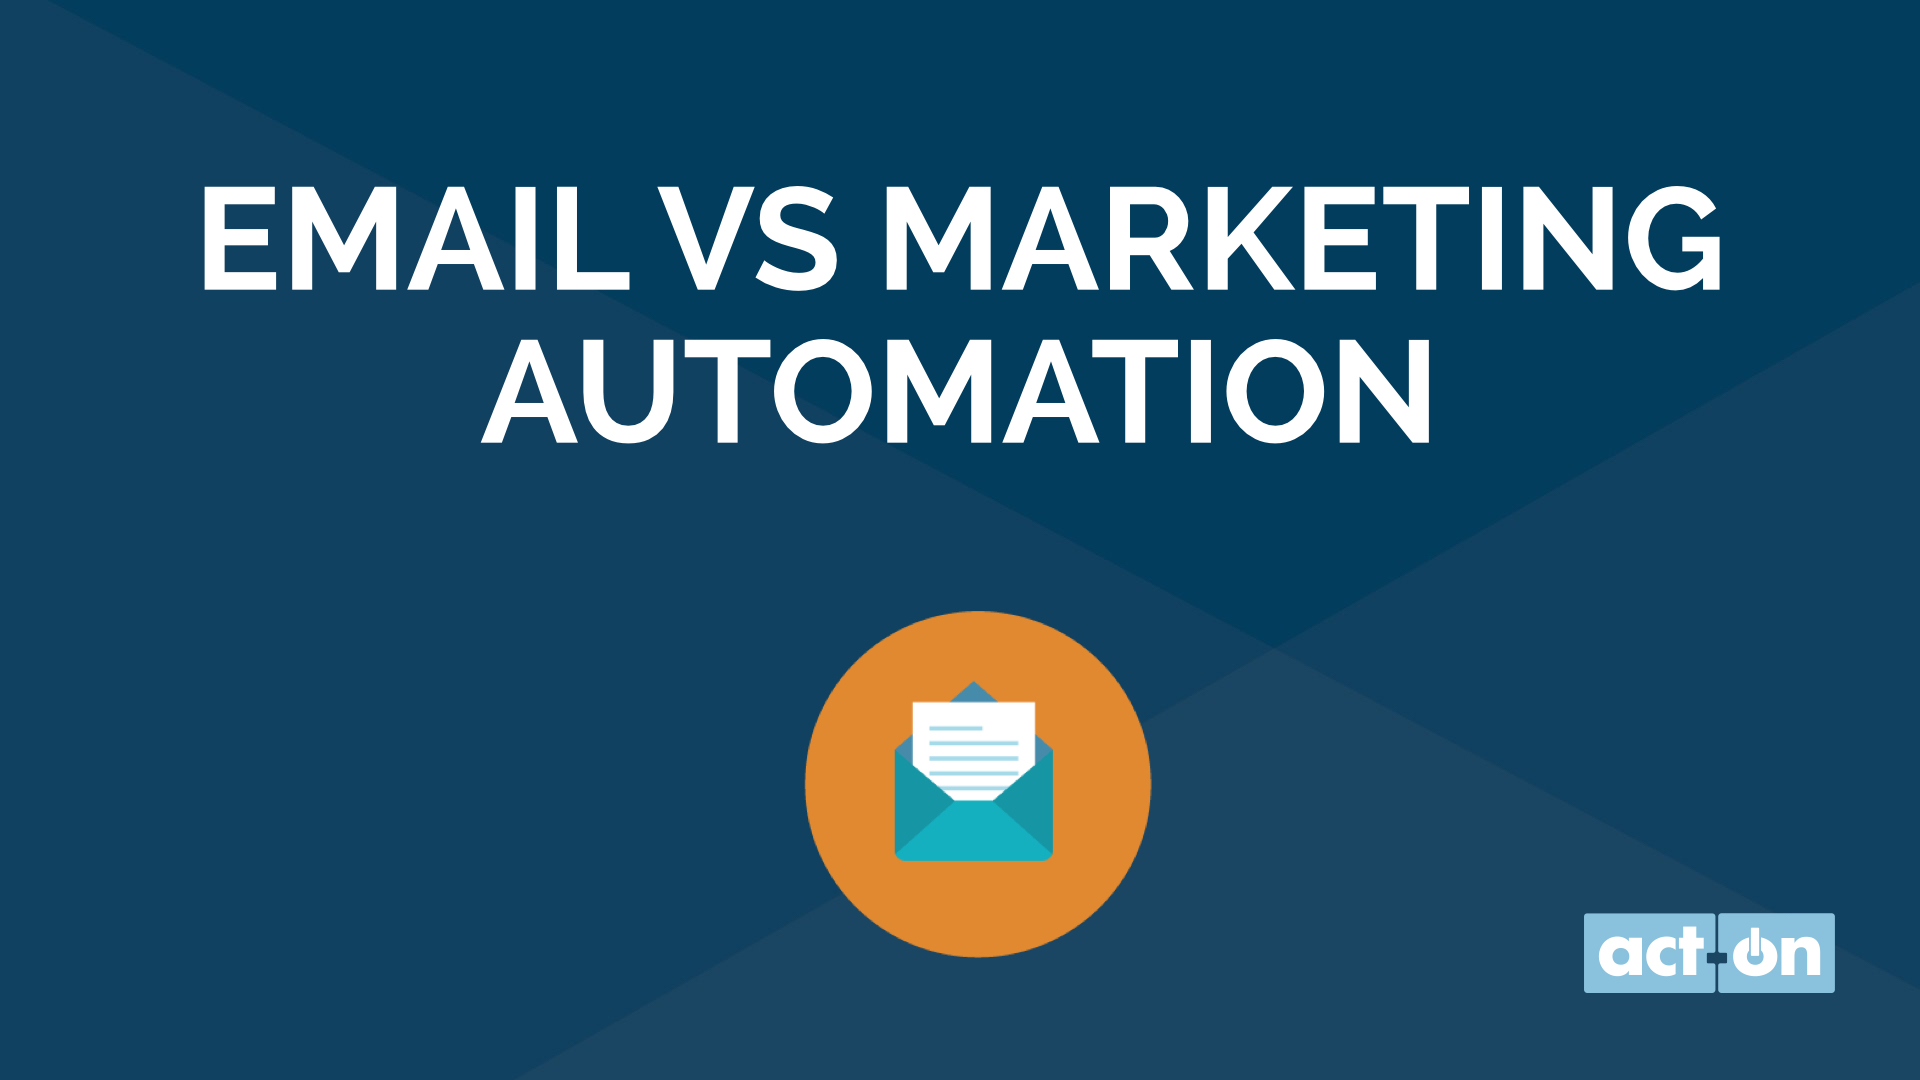 Email vs. Marketing Automation: 5 signs you are ready for Marketing Automation